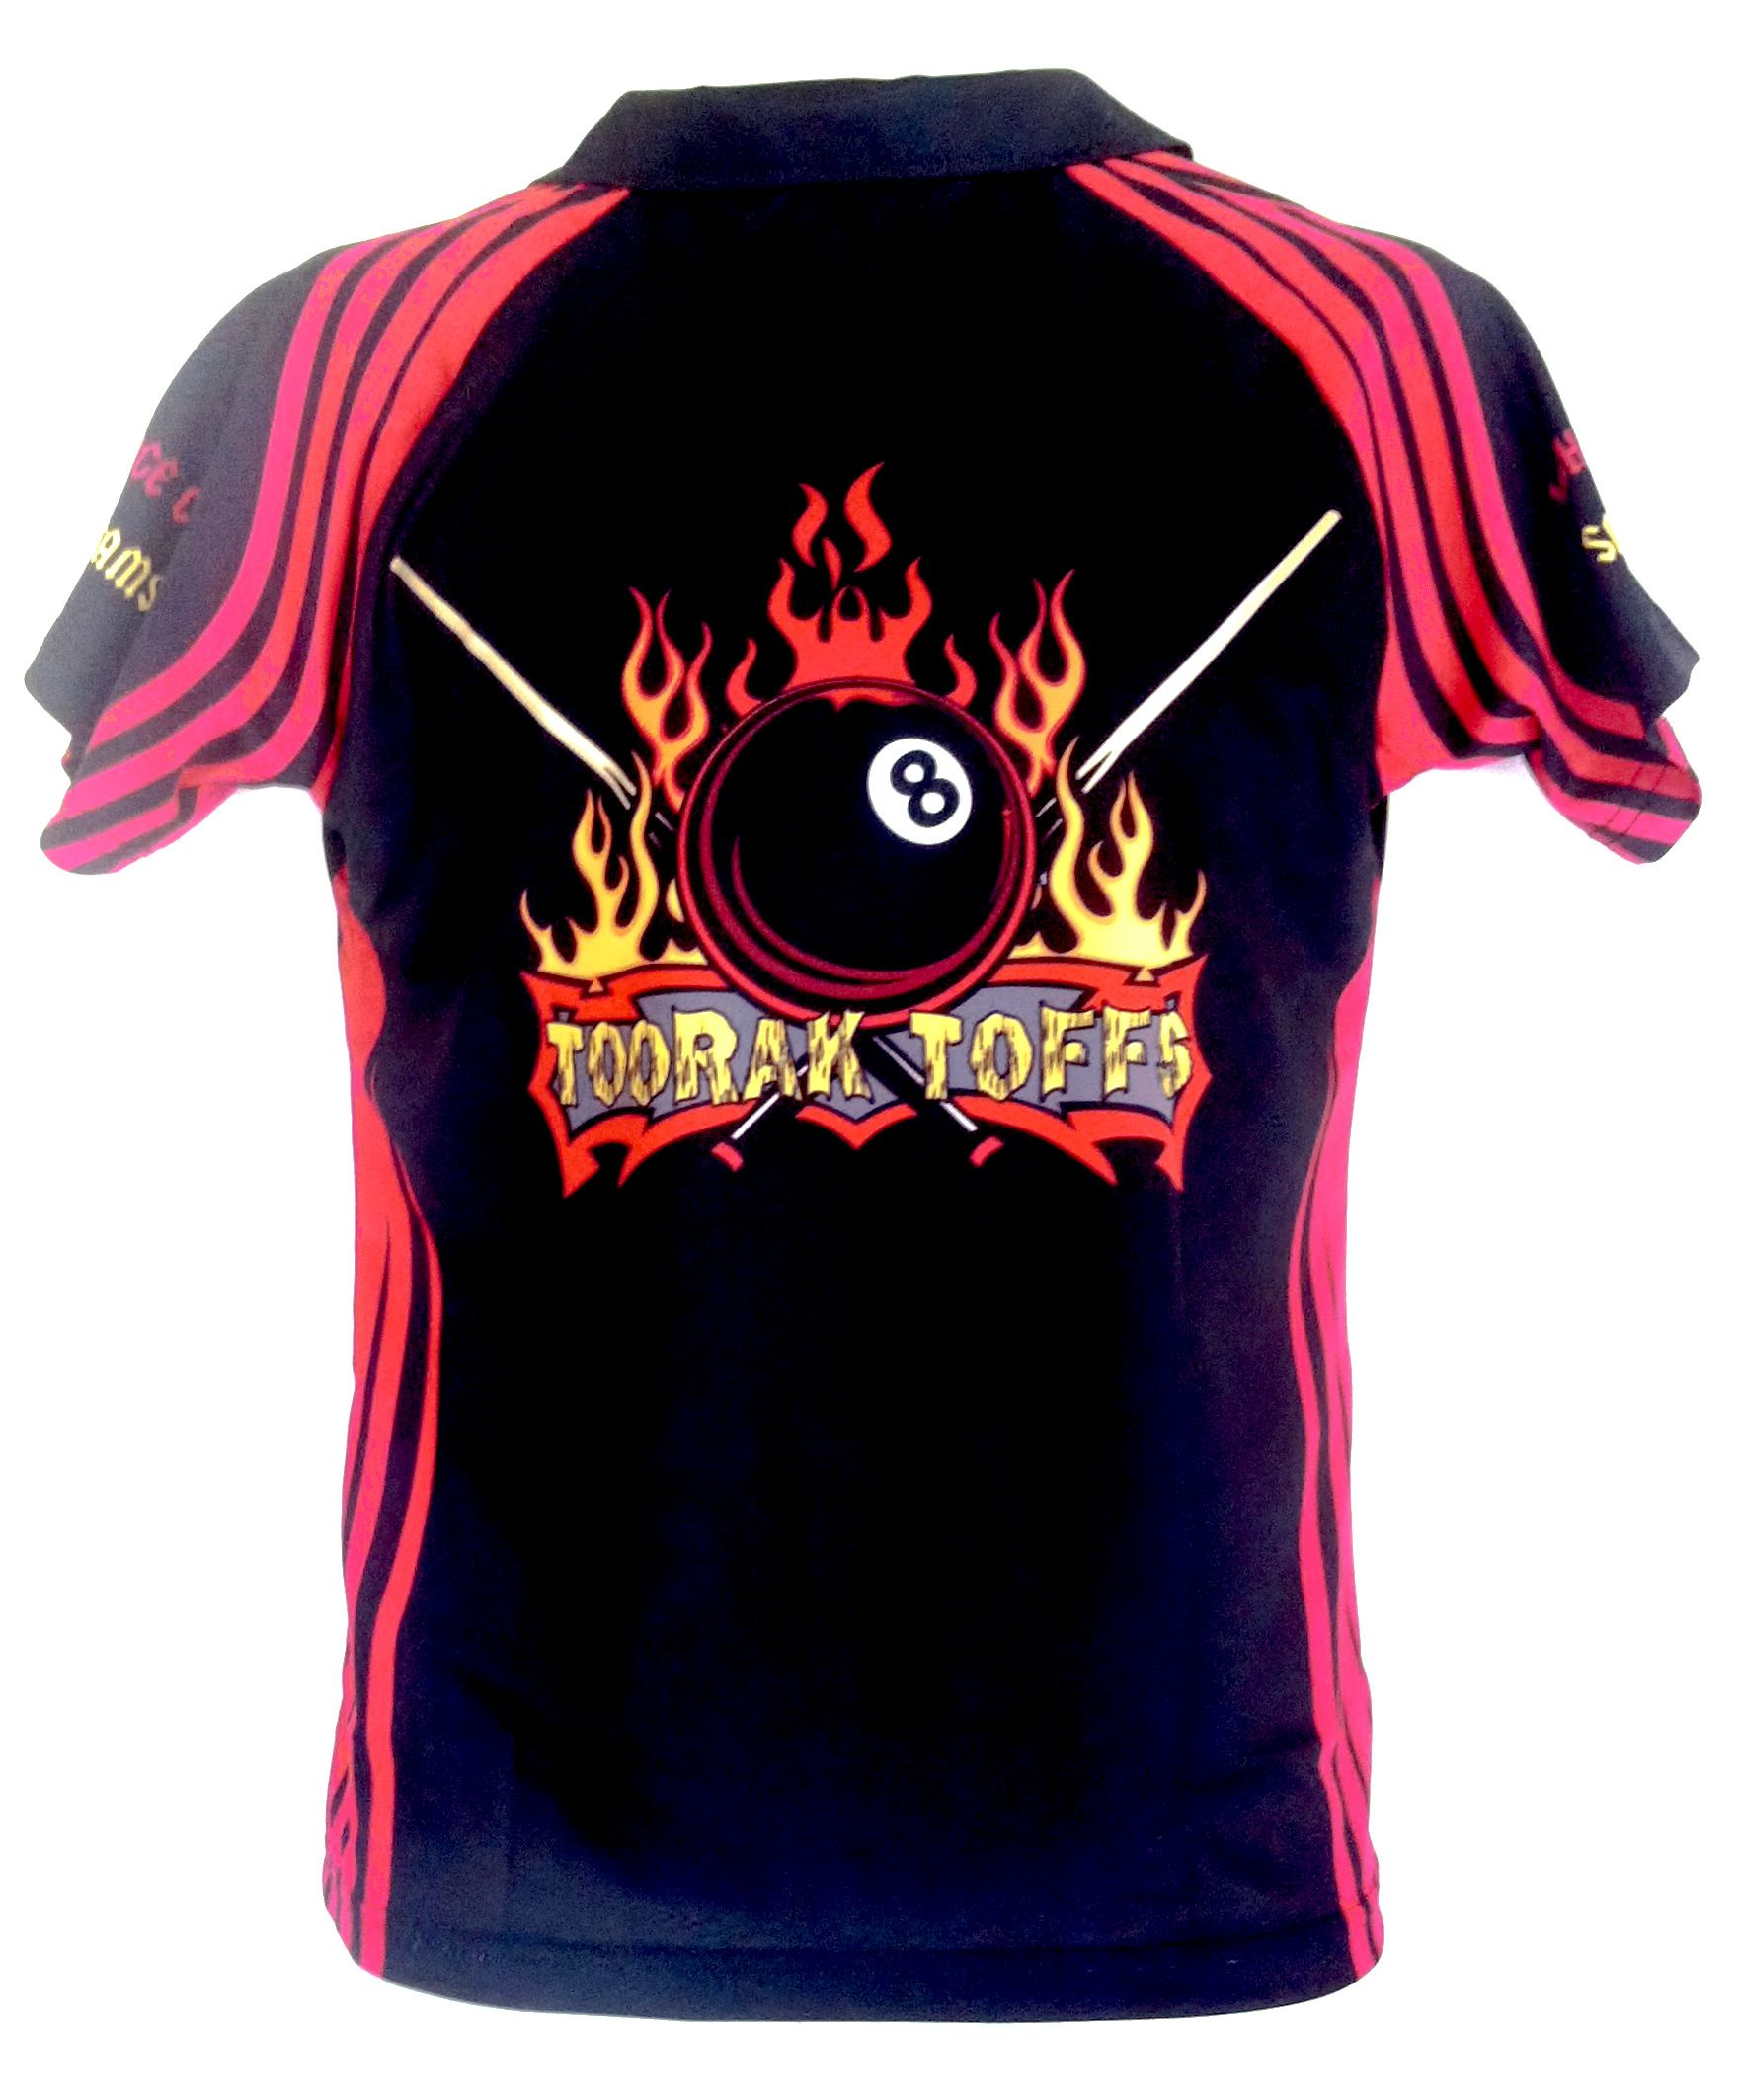 Shirt design on sleeve - Here Is A Creative Sublimated Polo Shirt Design For Toorak Toffs Made Especially For Their Pool